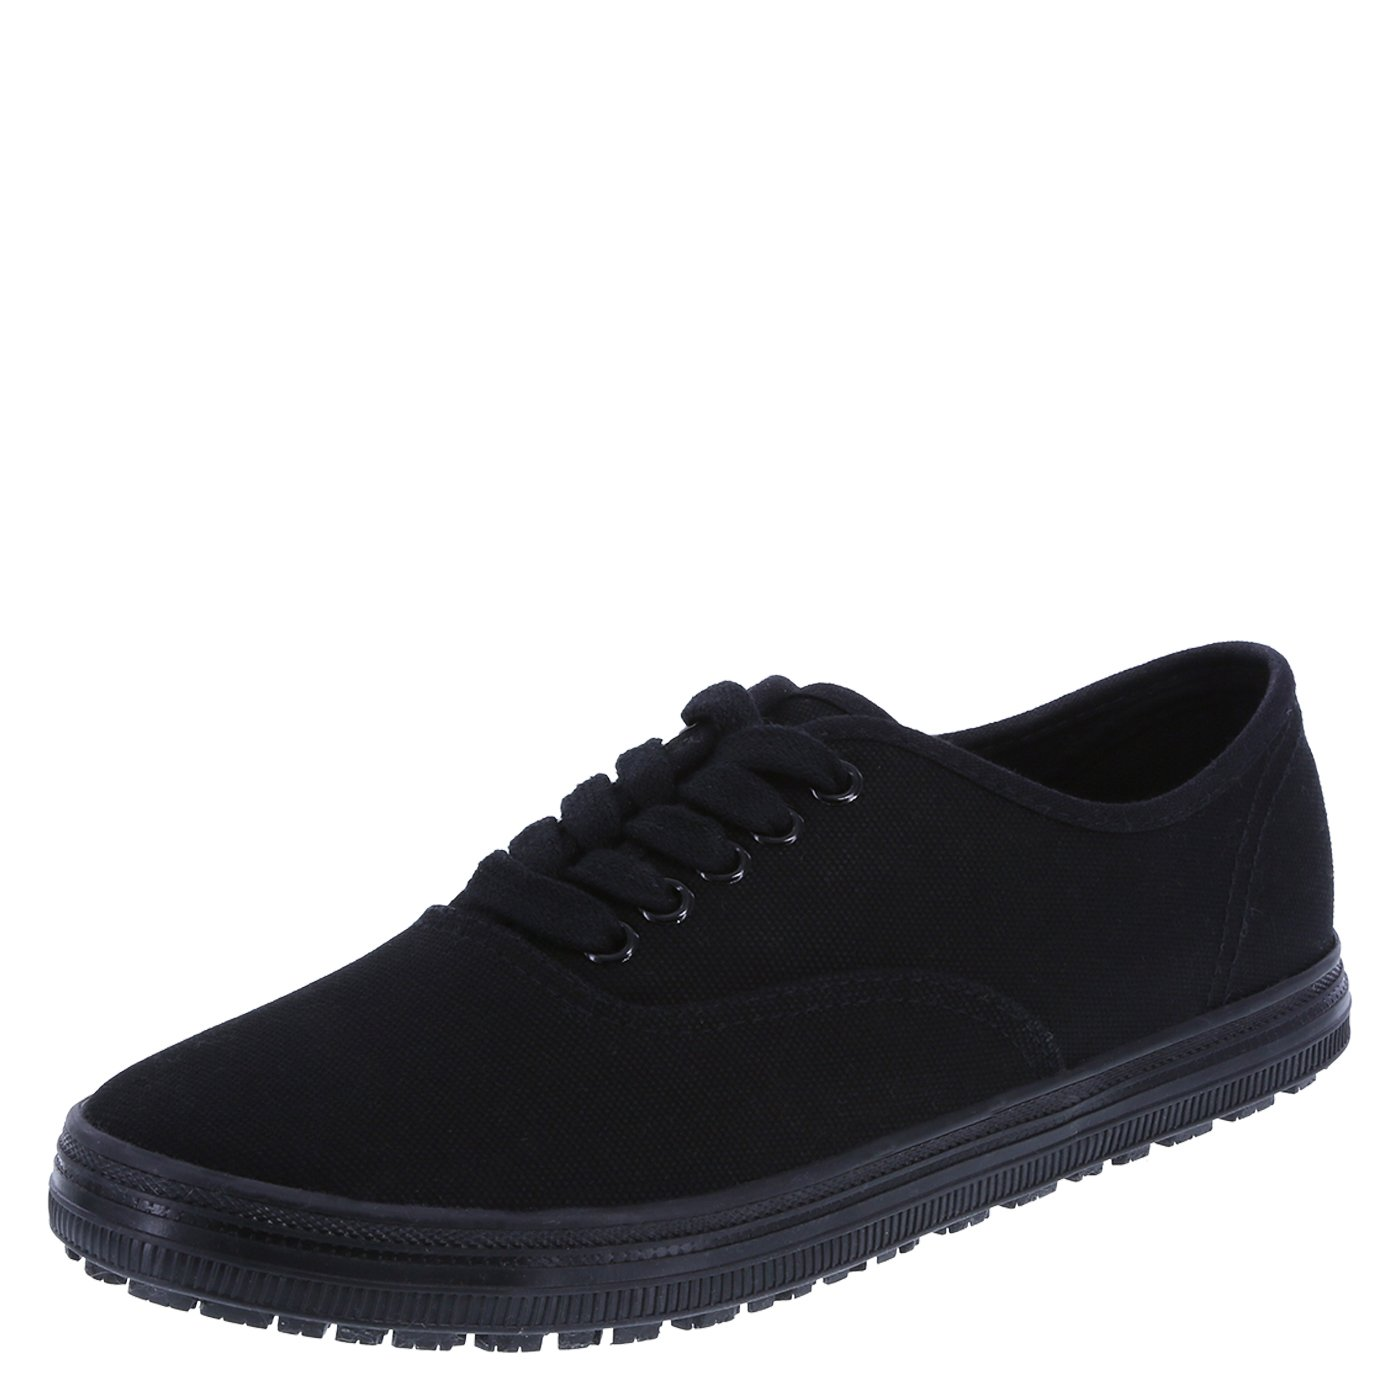 safeTstep Slip Resistant Women's Black Canvas Women's Kandice Canvas Oxford 7 Regular